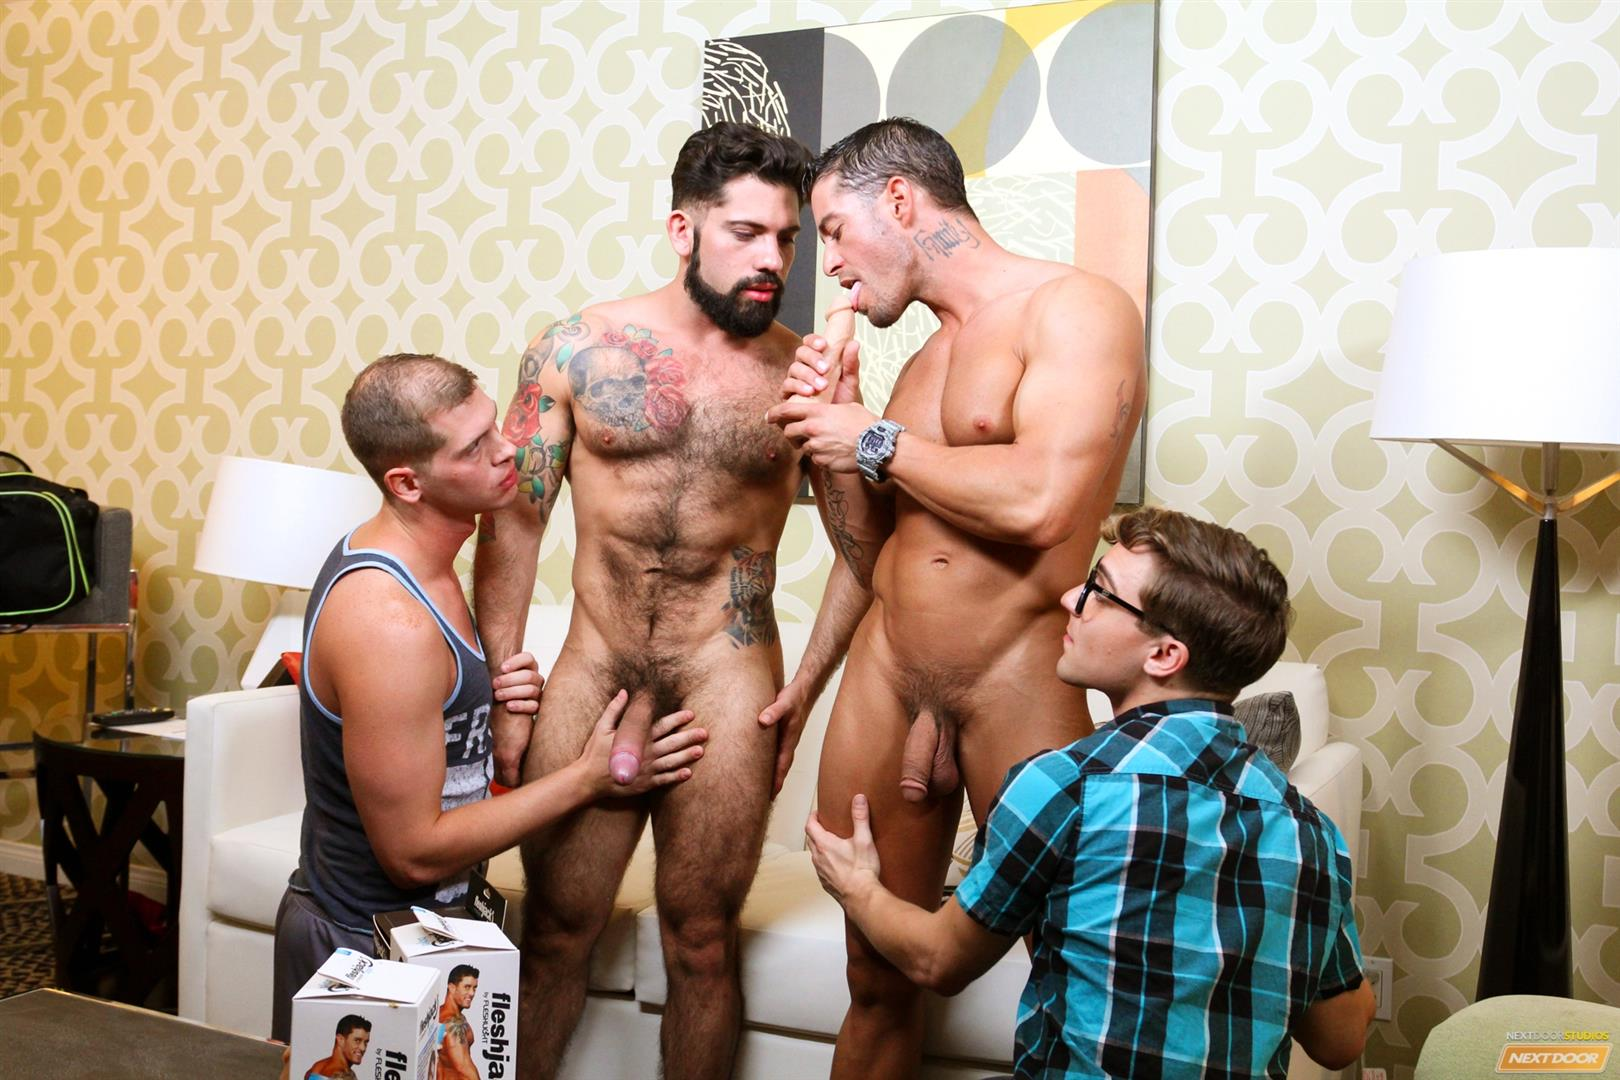 Cody-Cummings-and-Tyler-Morgan-and-Alessandro-Del-Torro-Cock-Sucking-Lessons-Amateur-Gay-Porn-10 Cody Cummings Gives The Boys Cock Sucking Lessons